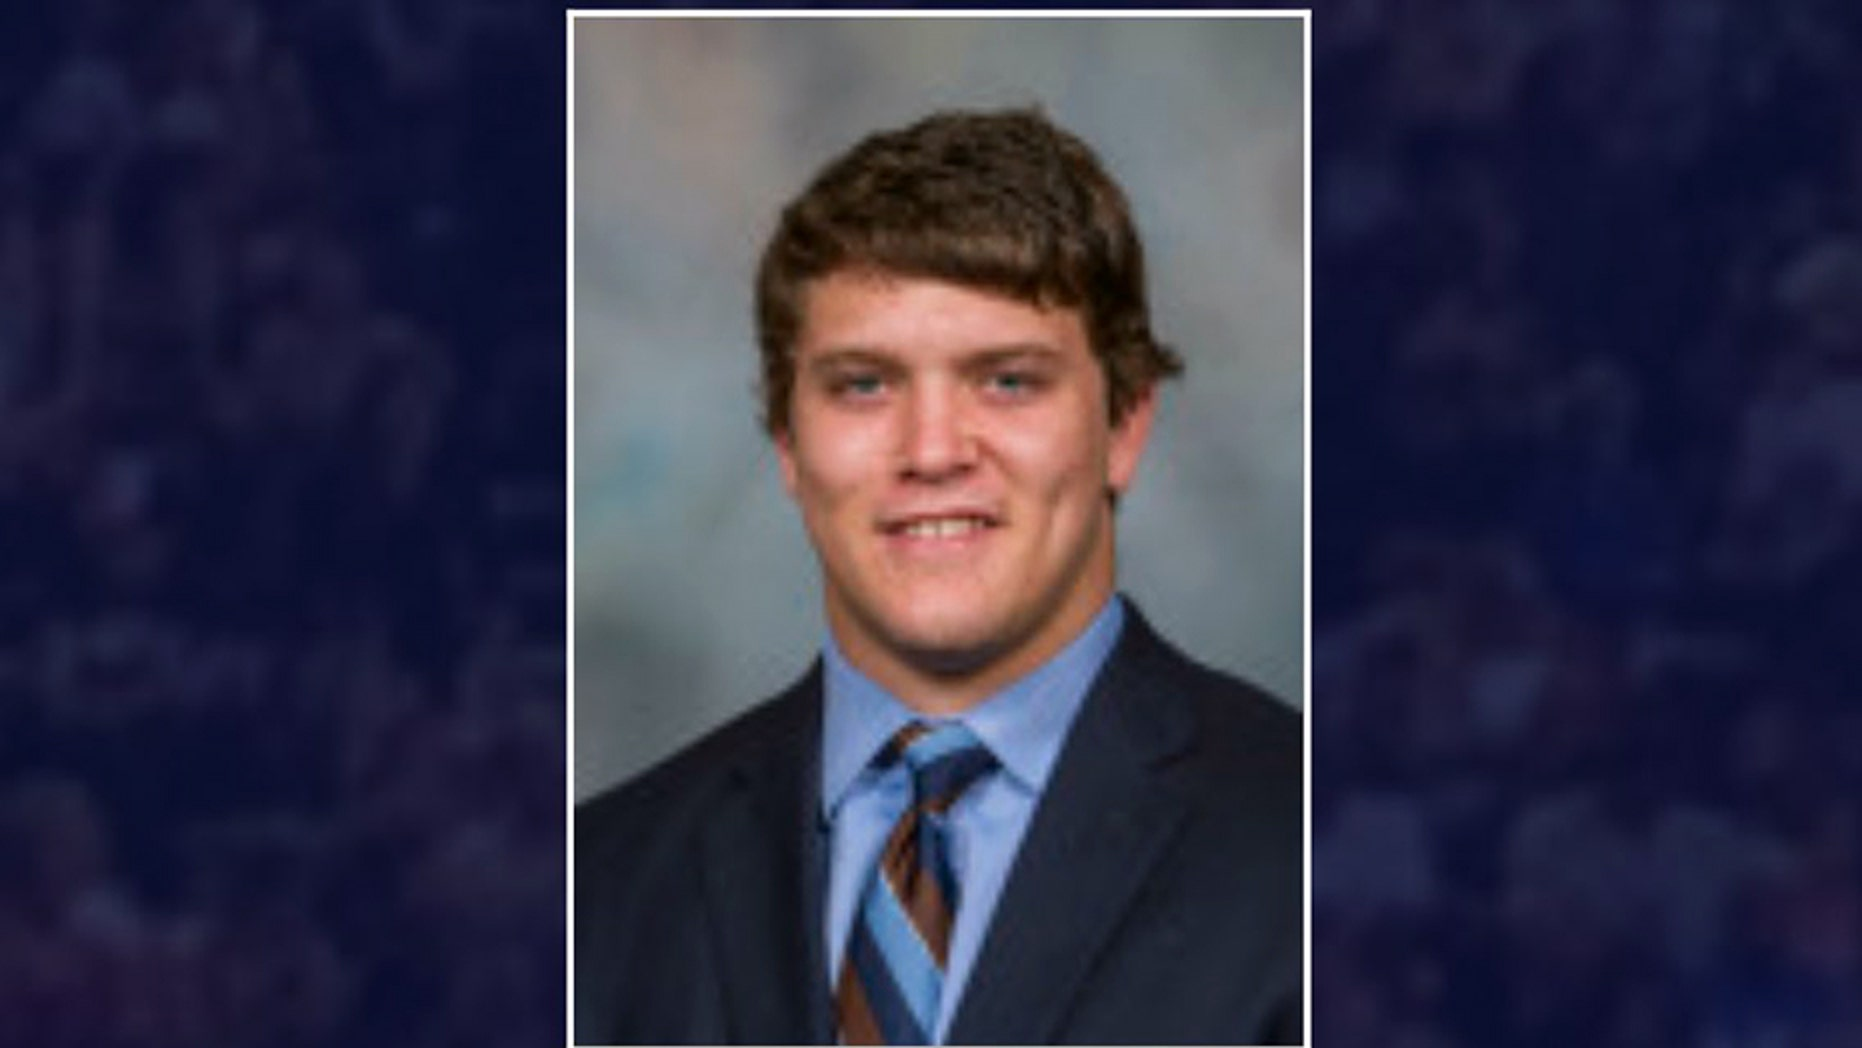 Rice football player Blain Padgett was found dead in his apartment after he missed a team workout Friday.